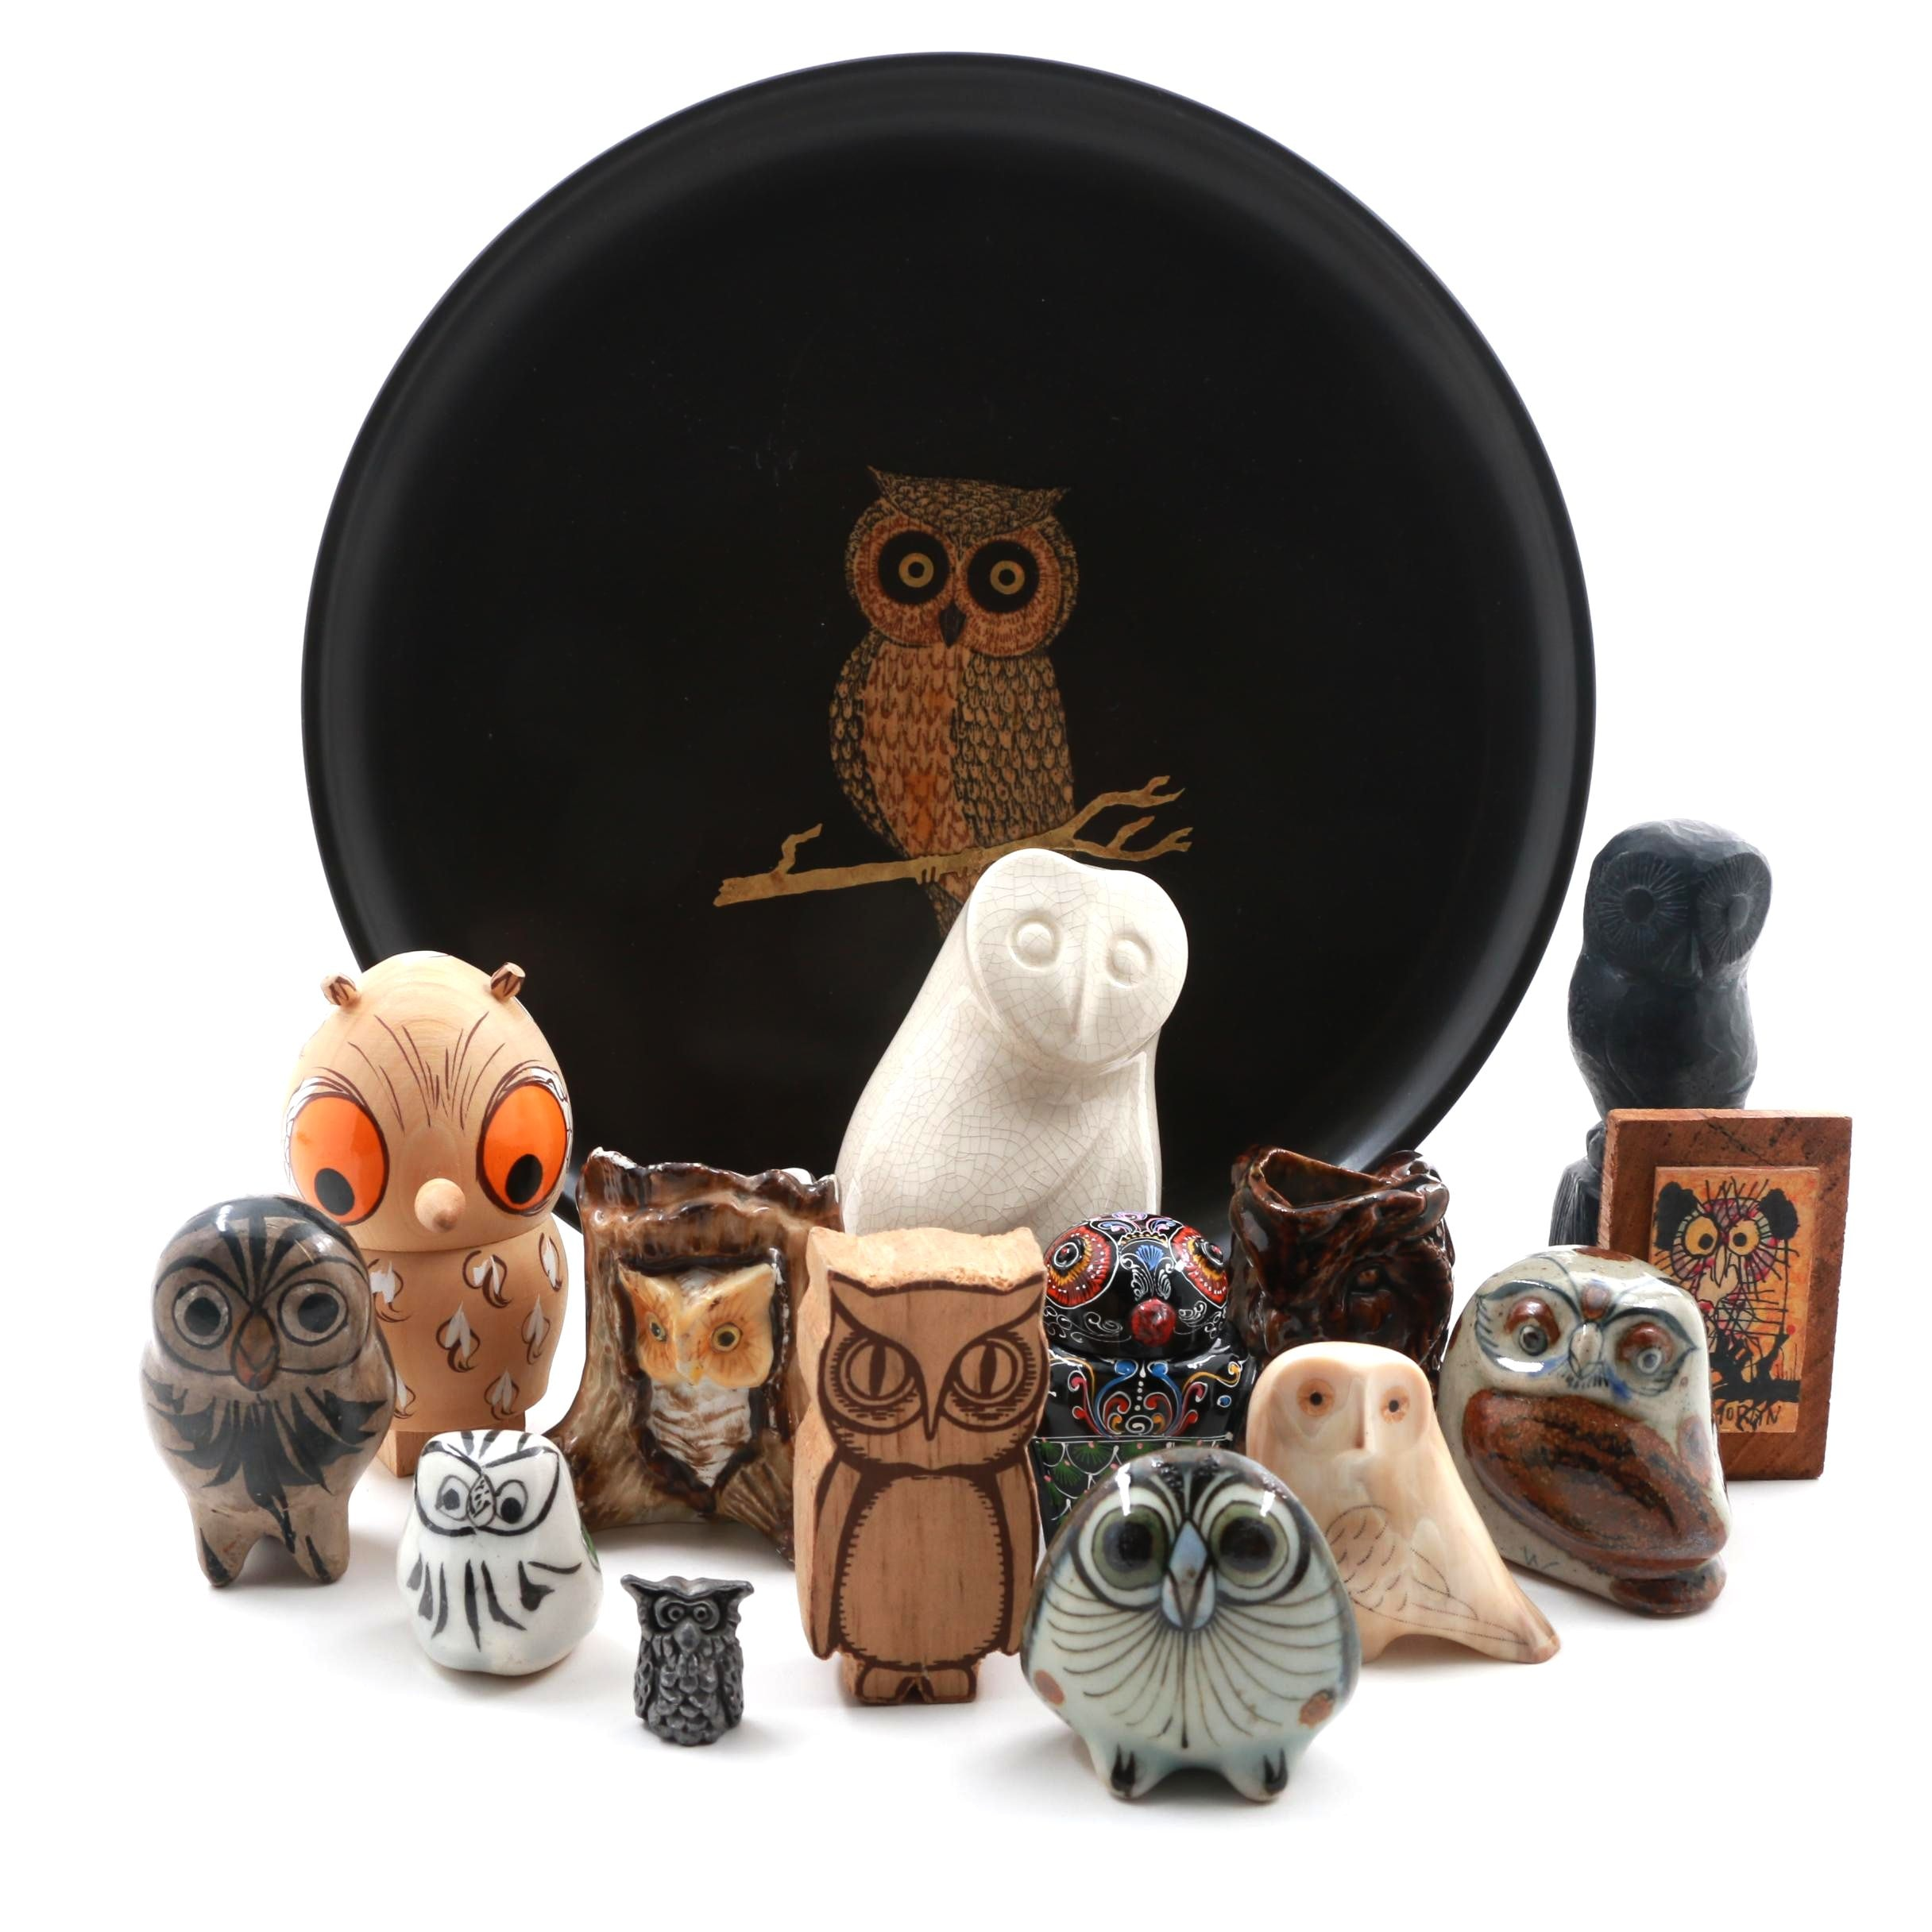 Assortment of Owl Figurines and Decor Including Sitka